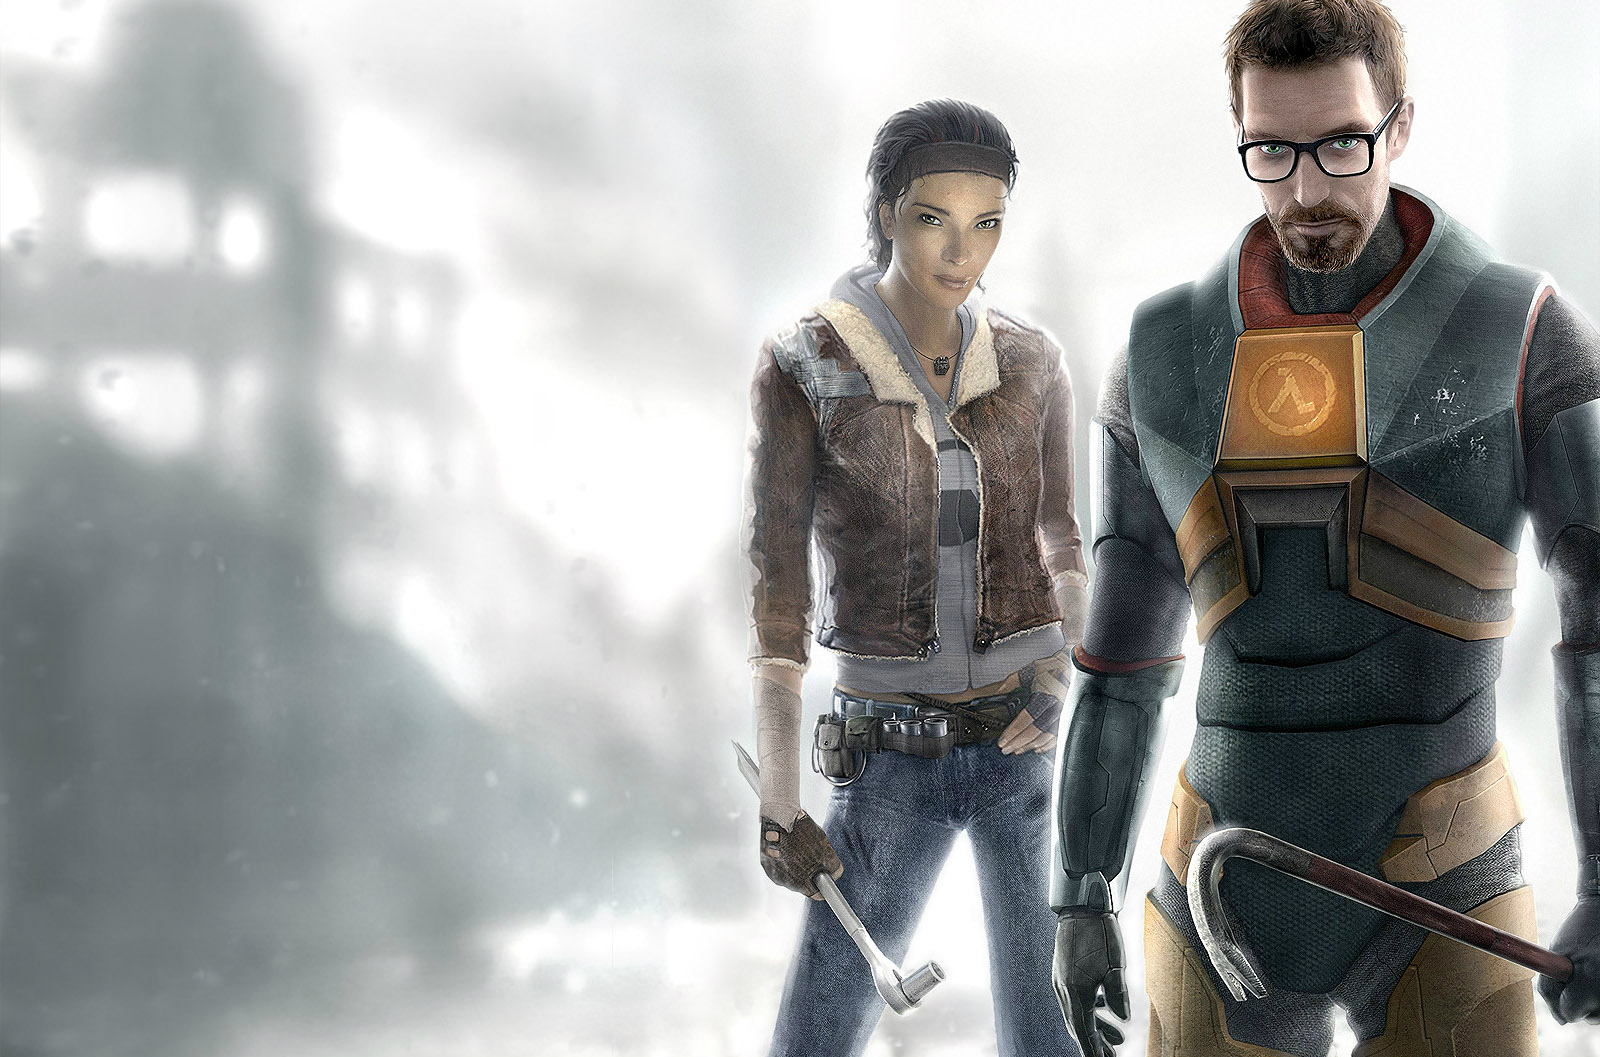 Half-Life 2 Coming to NVIDIA Shield - Game Teased with a